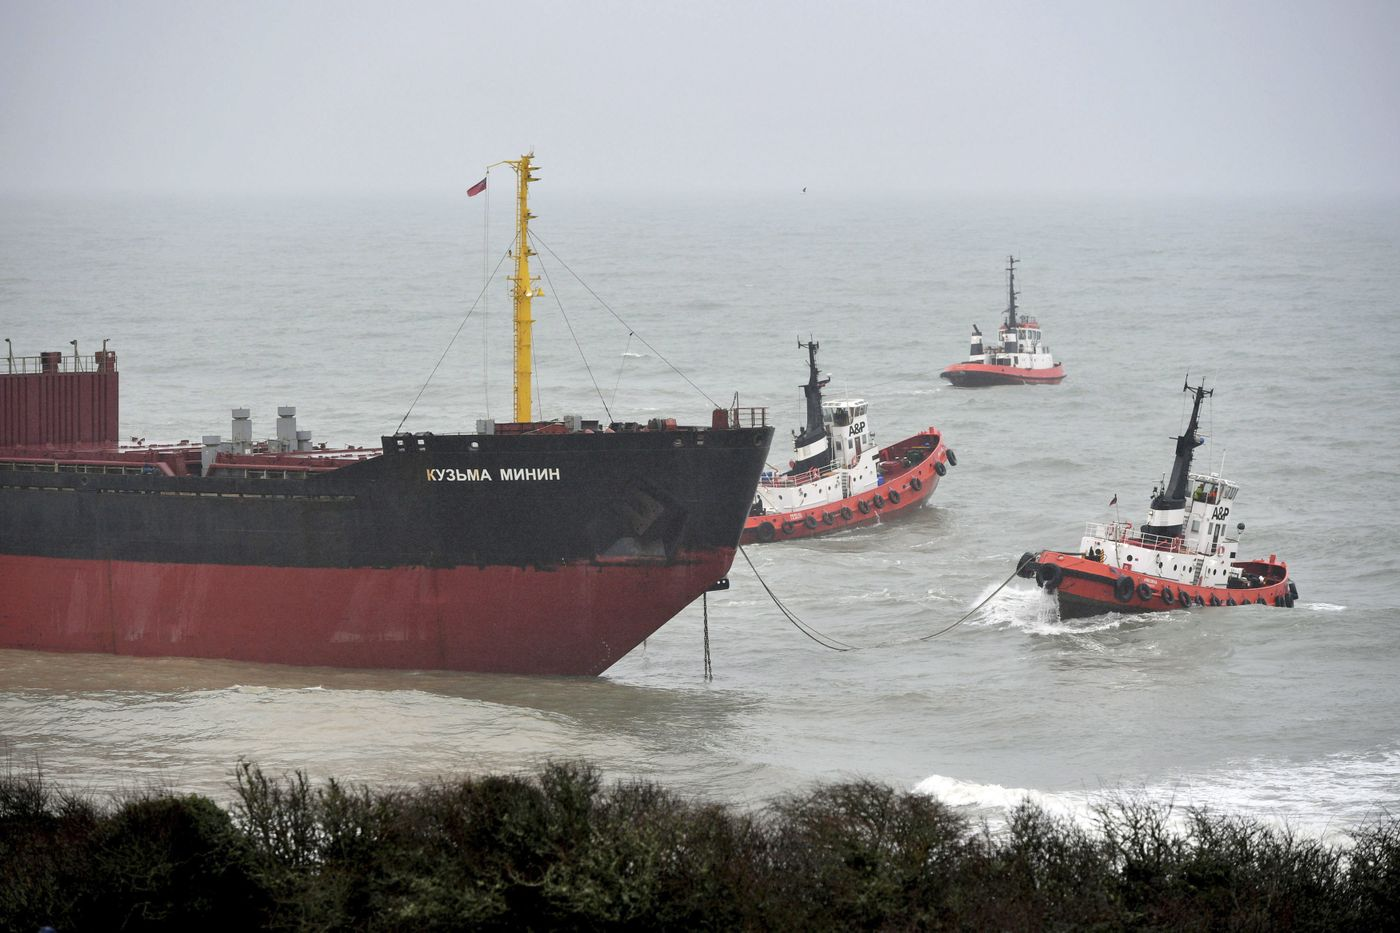 The Risky Rescue of the Crew of a Ship in the Middle of a Storm